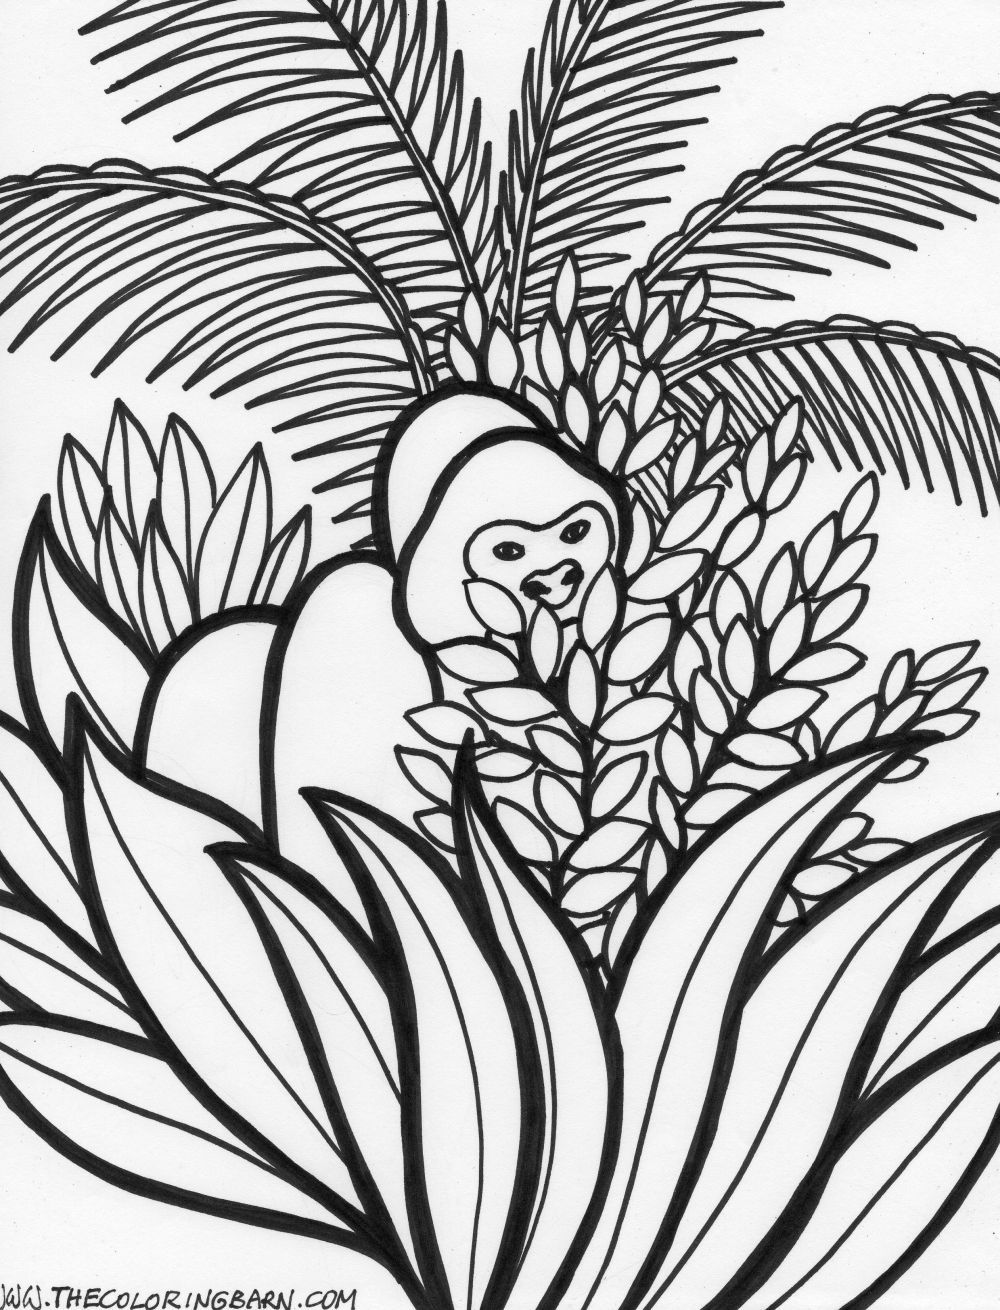 coloring pages of jungle animals rain forest the coloring barn